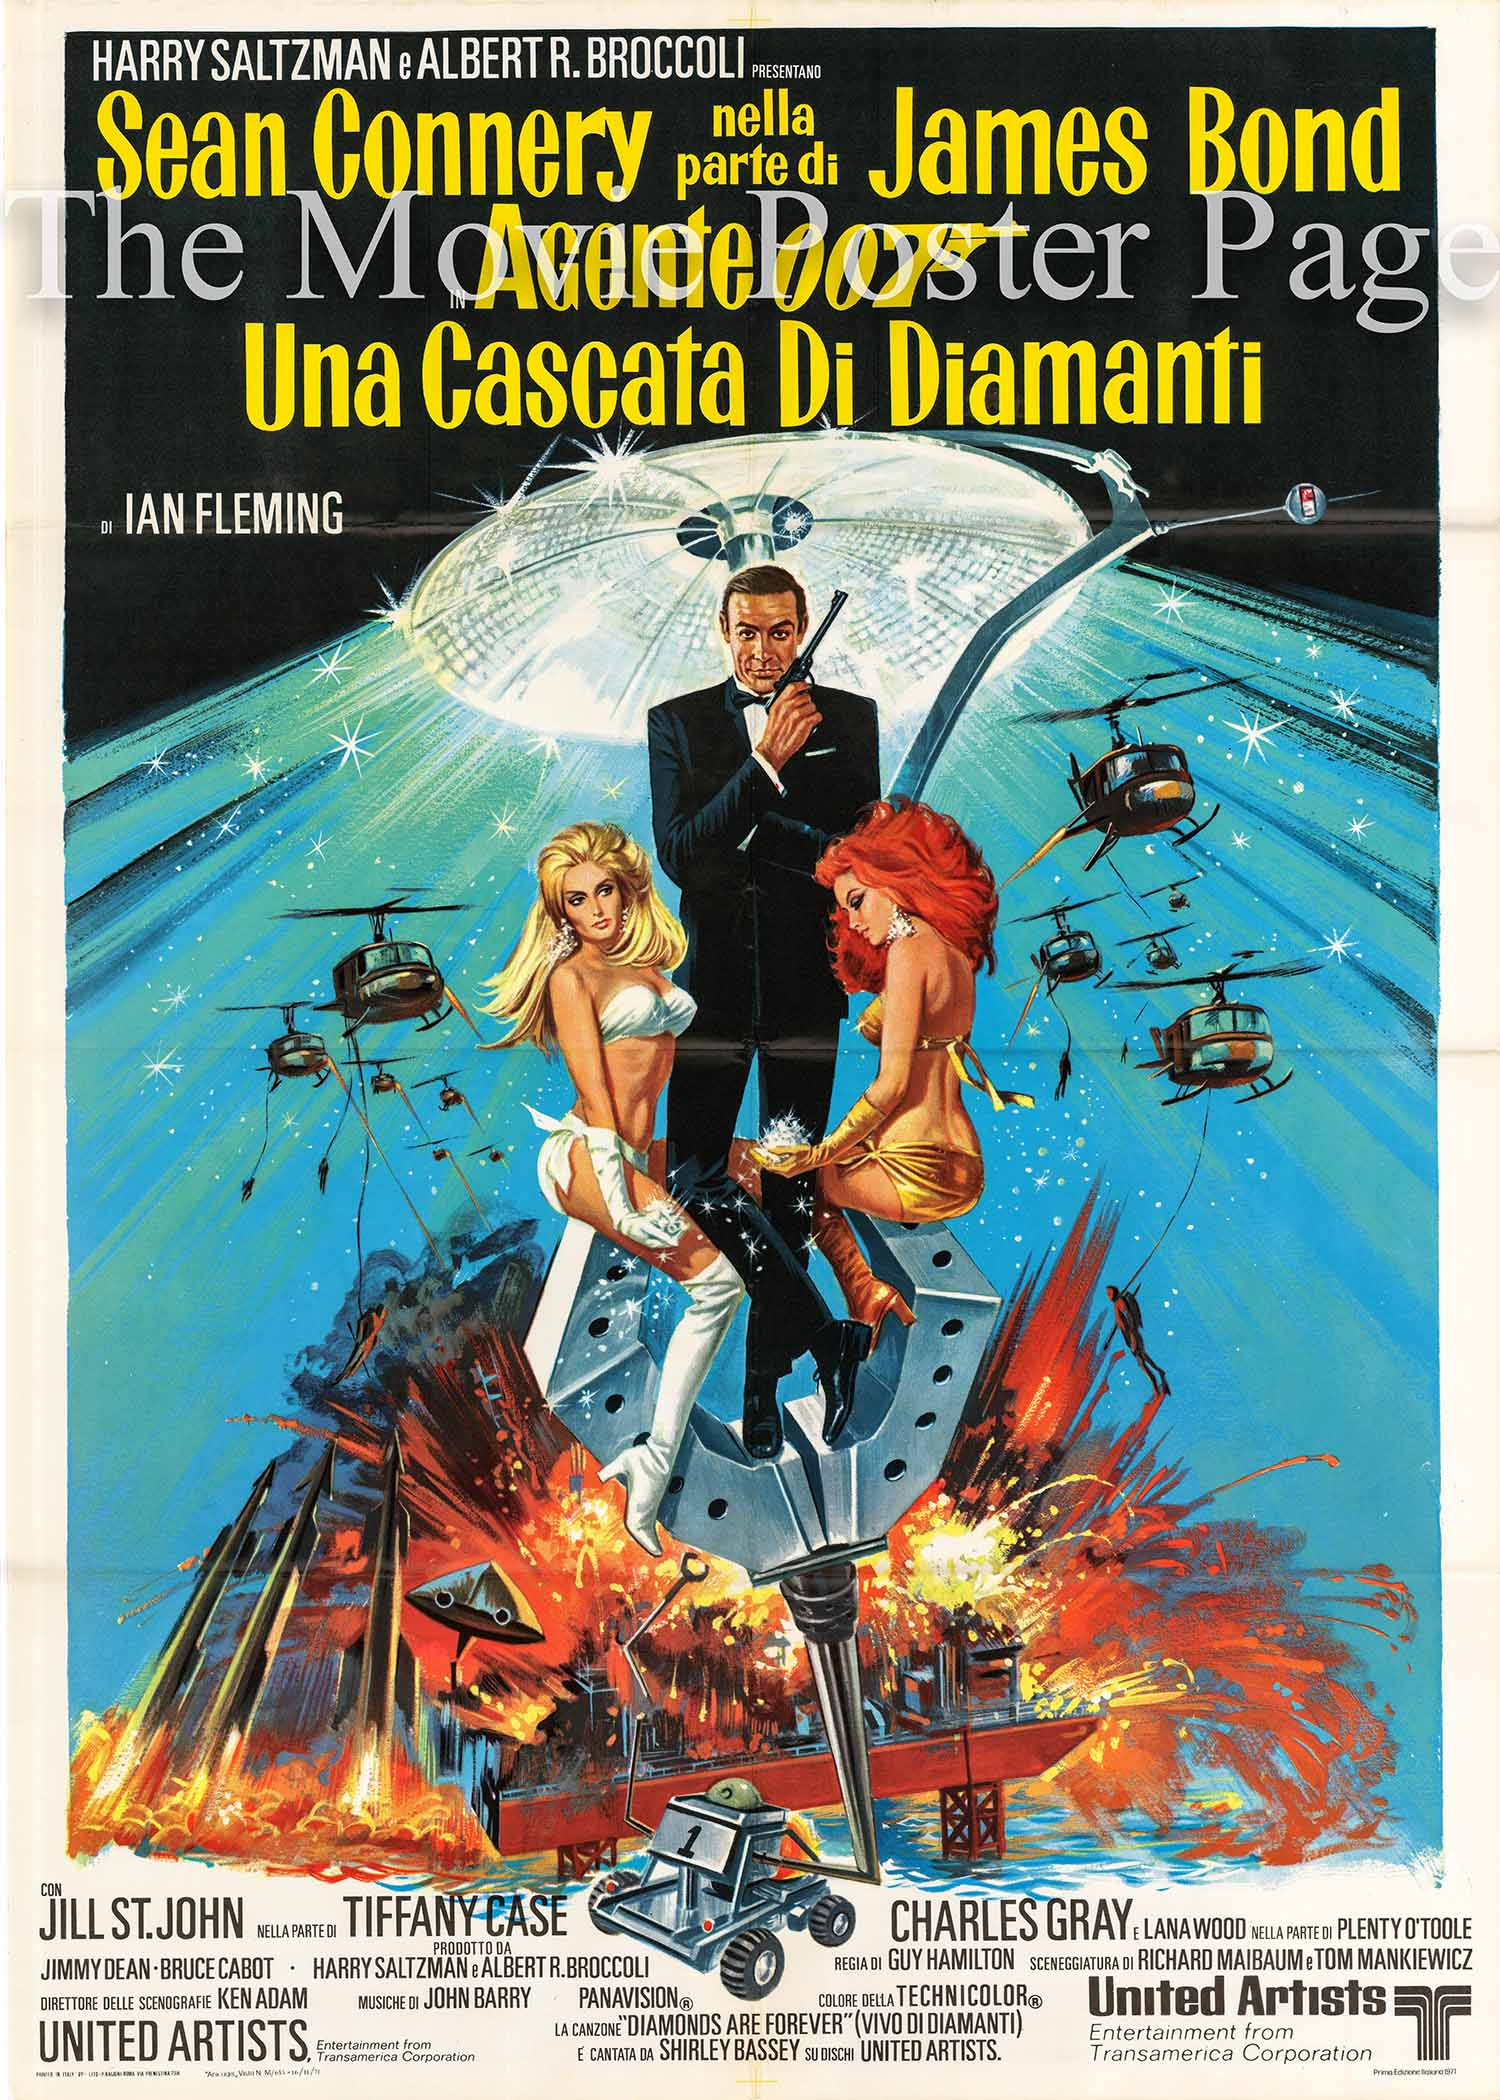 Pictured here is an Italian 2-sheet poster made to promote the 1971 Guy Hamilton film Diamonds are Forever starring Sean Connery.